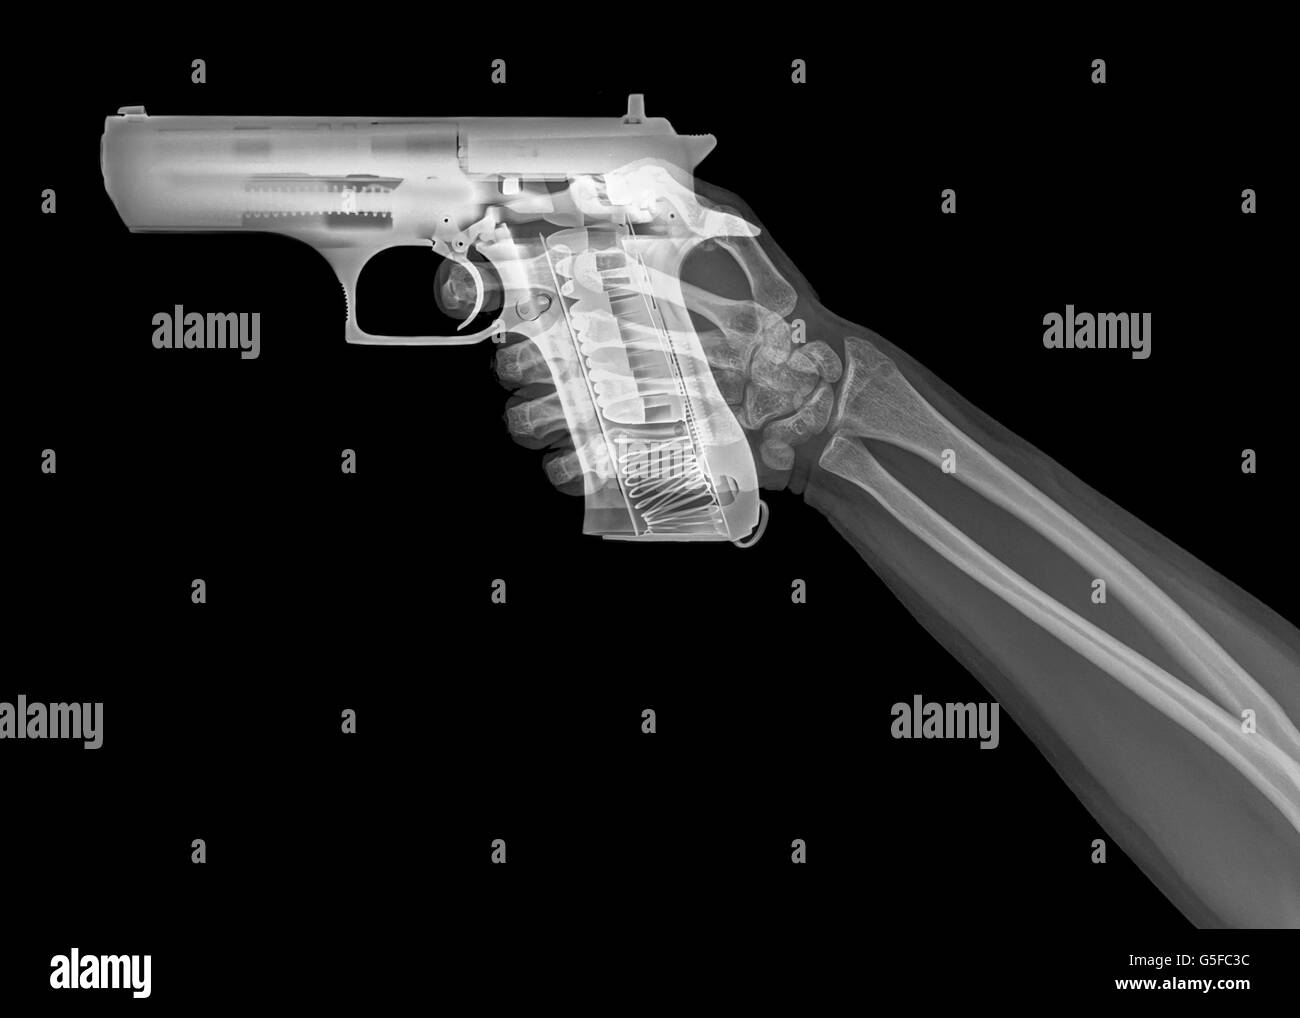 hand holds a gun under x-ray - Stock Image